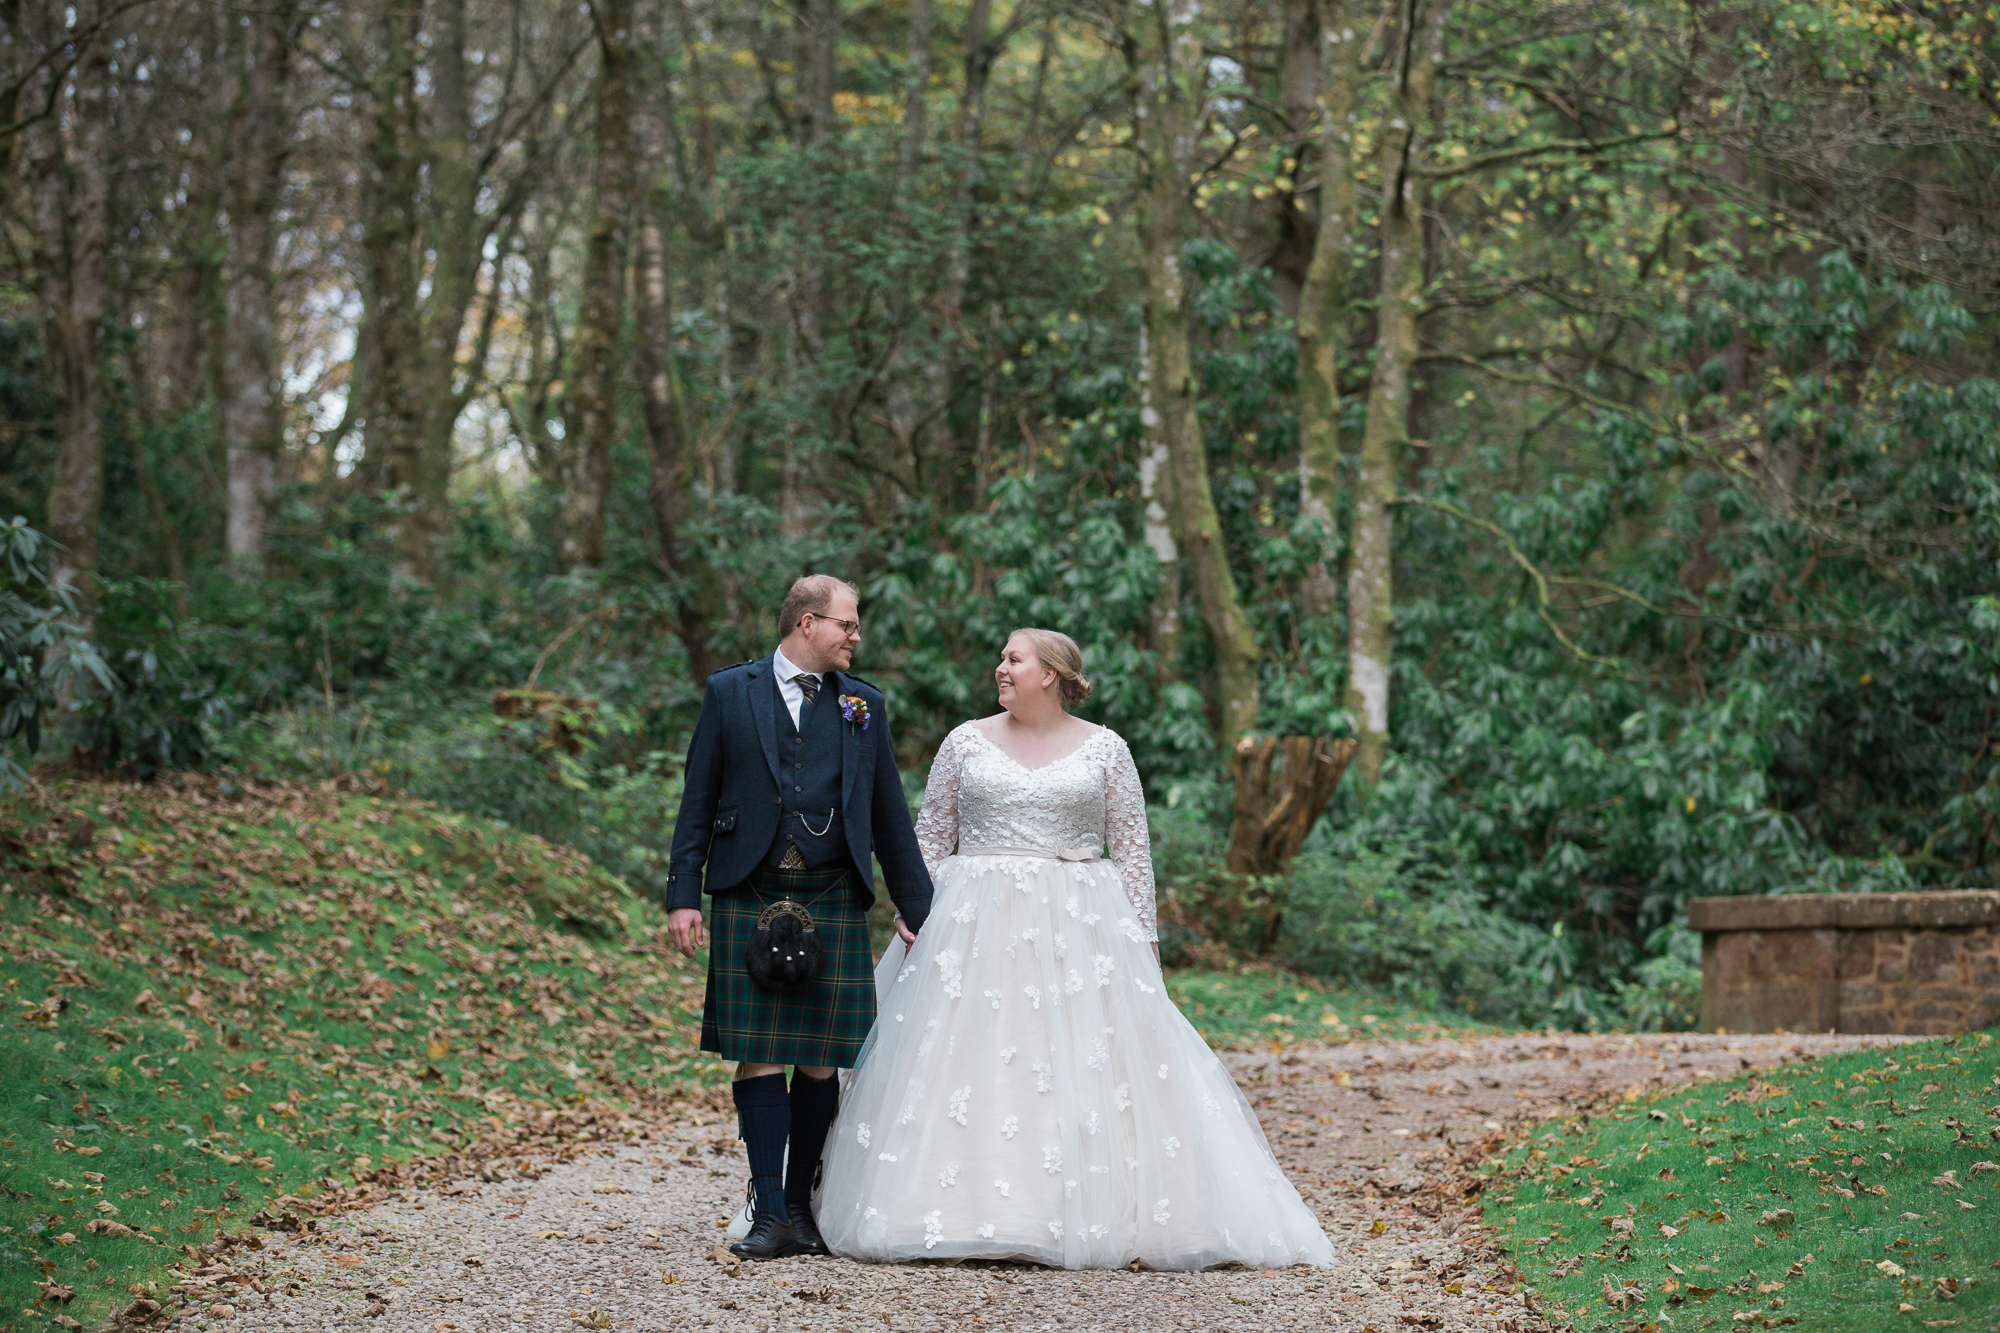 fasque castle wedding photographer, wedding photography fasque castle, fasque wedding, wedding photographer in Aberdeenshire, Aberdeen wedding, Aberdeen wedding photography, fasque castle wedding